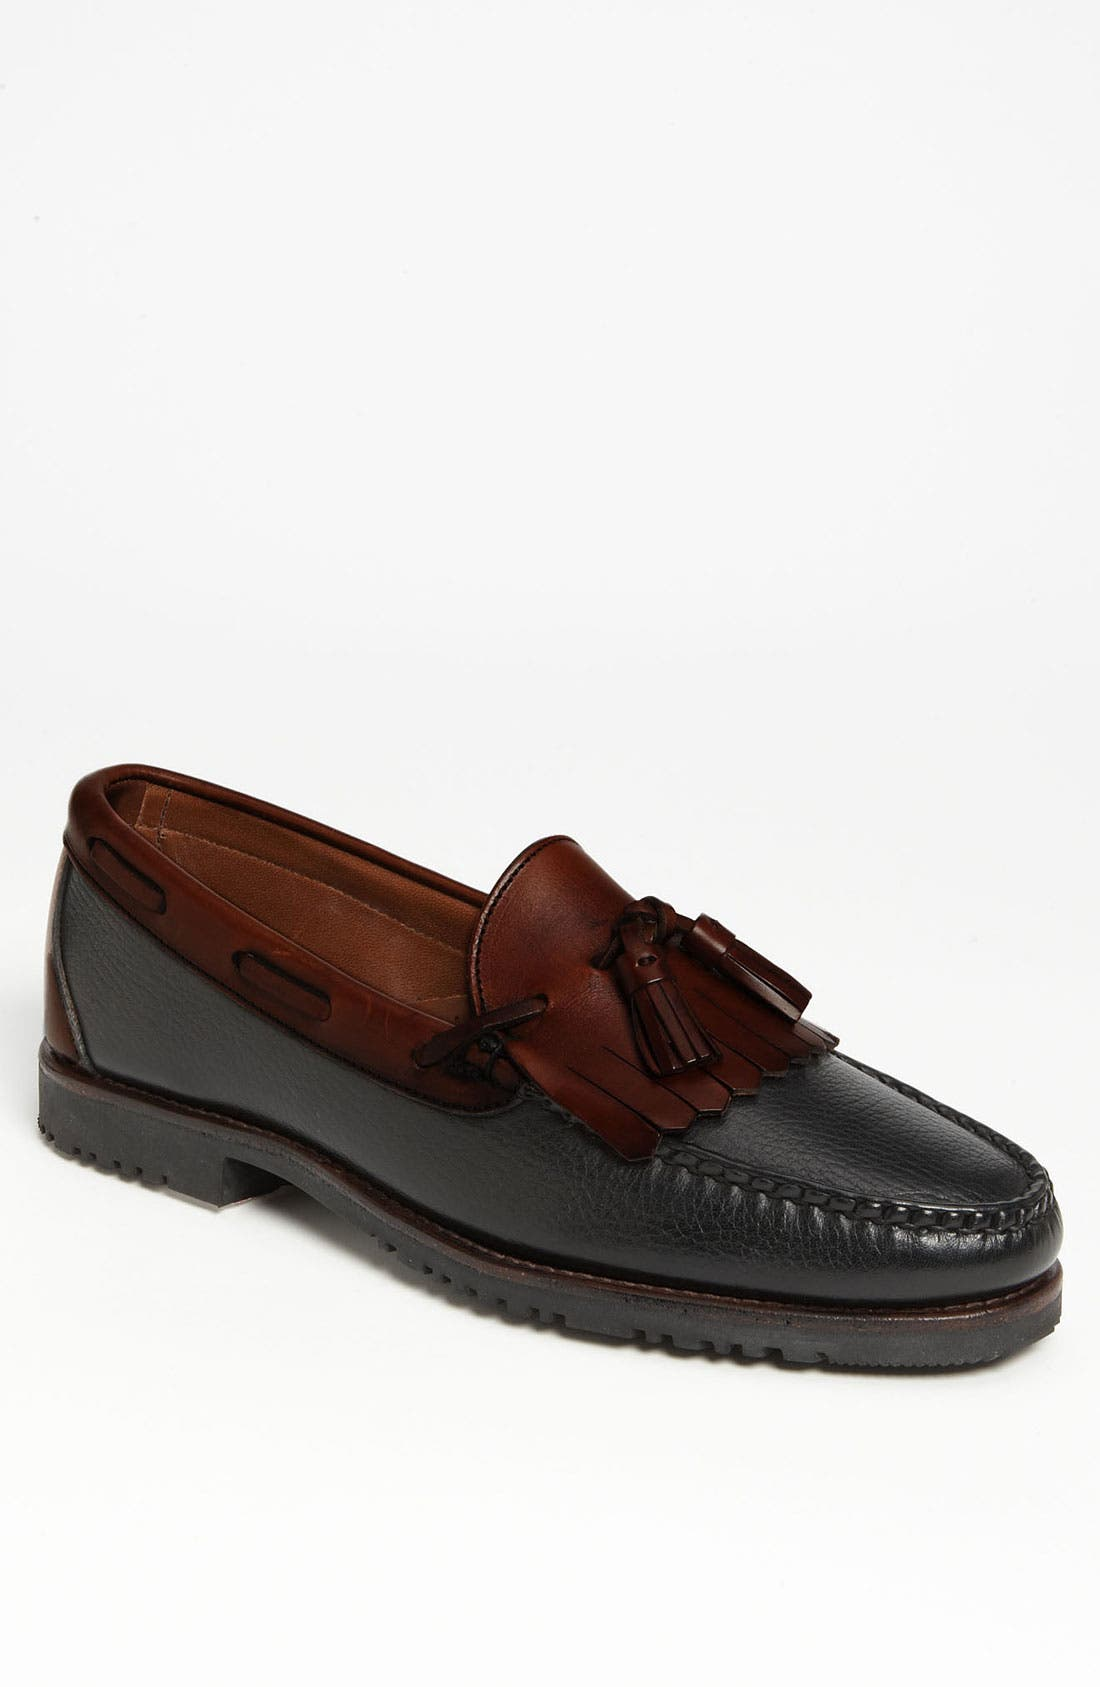 ALLEN EDMONDS, 'Nashua' Tassel Loafer, Main thumbnail 1, color, BLACK/ BROWN